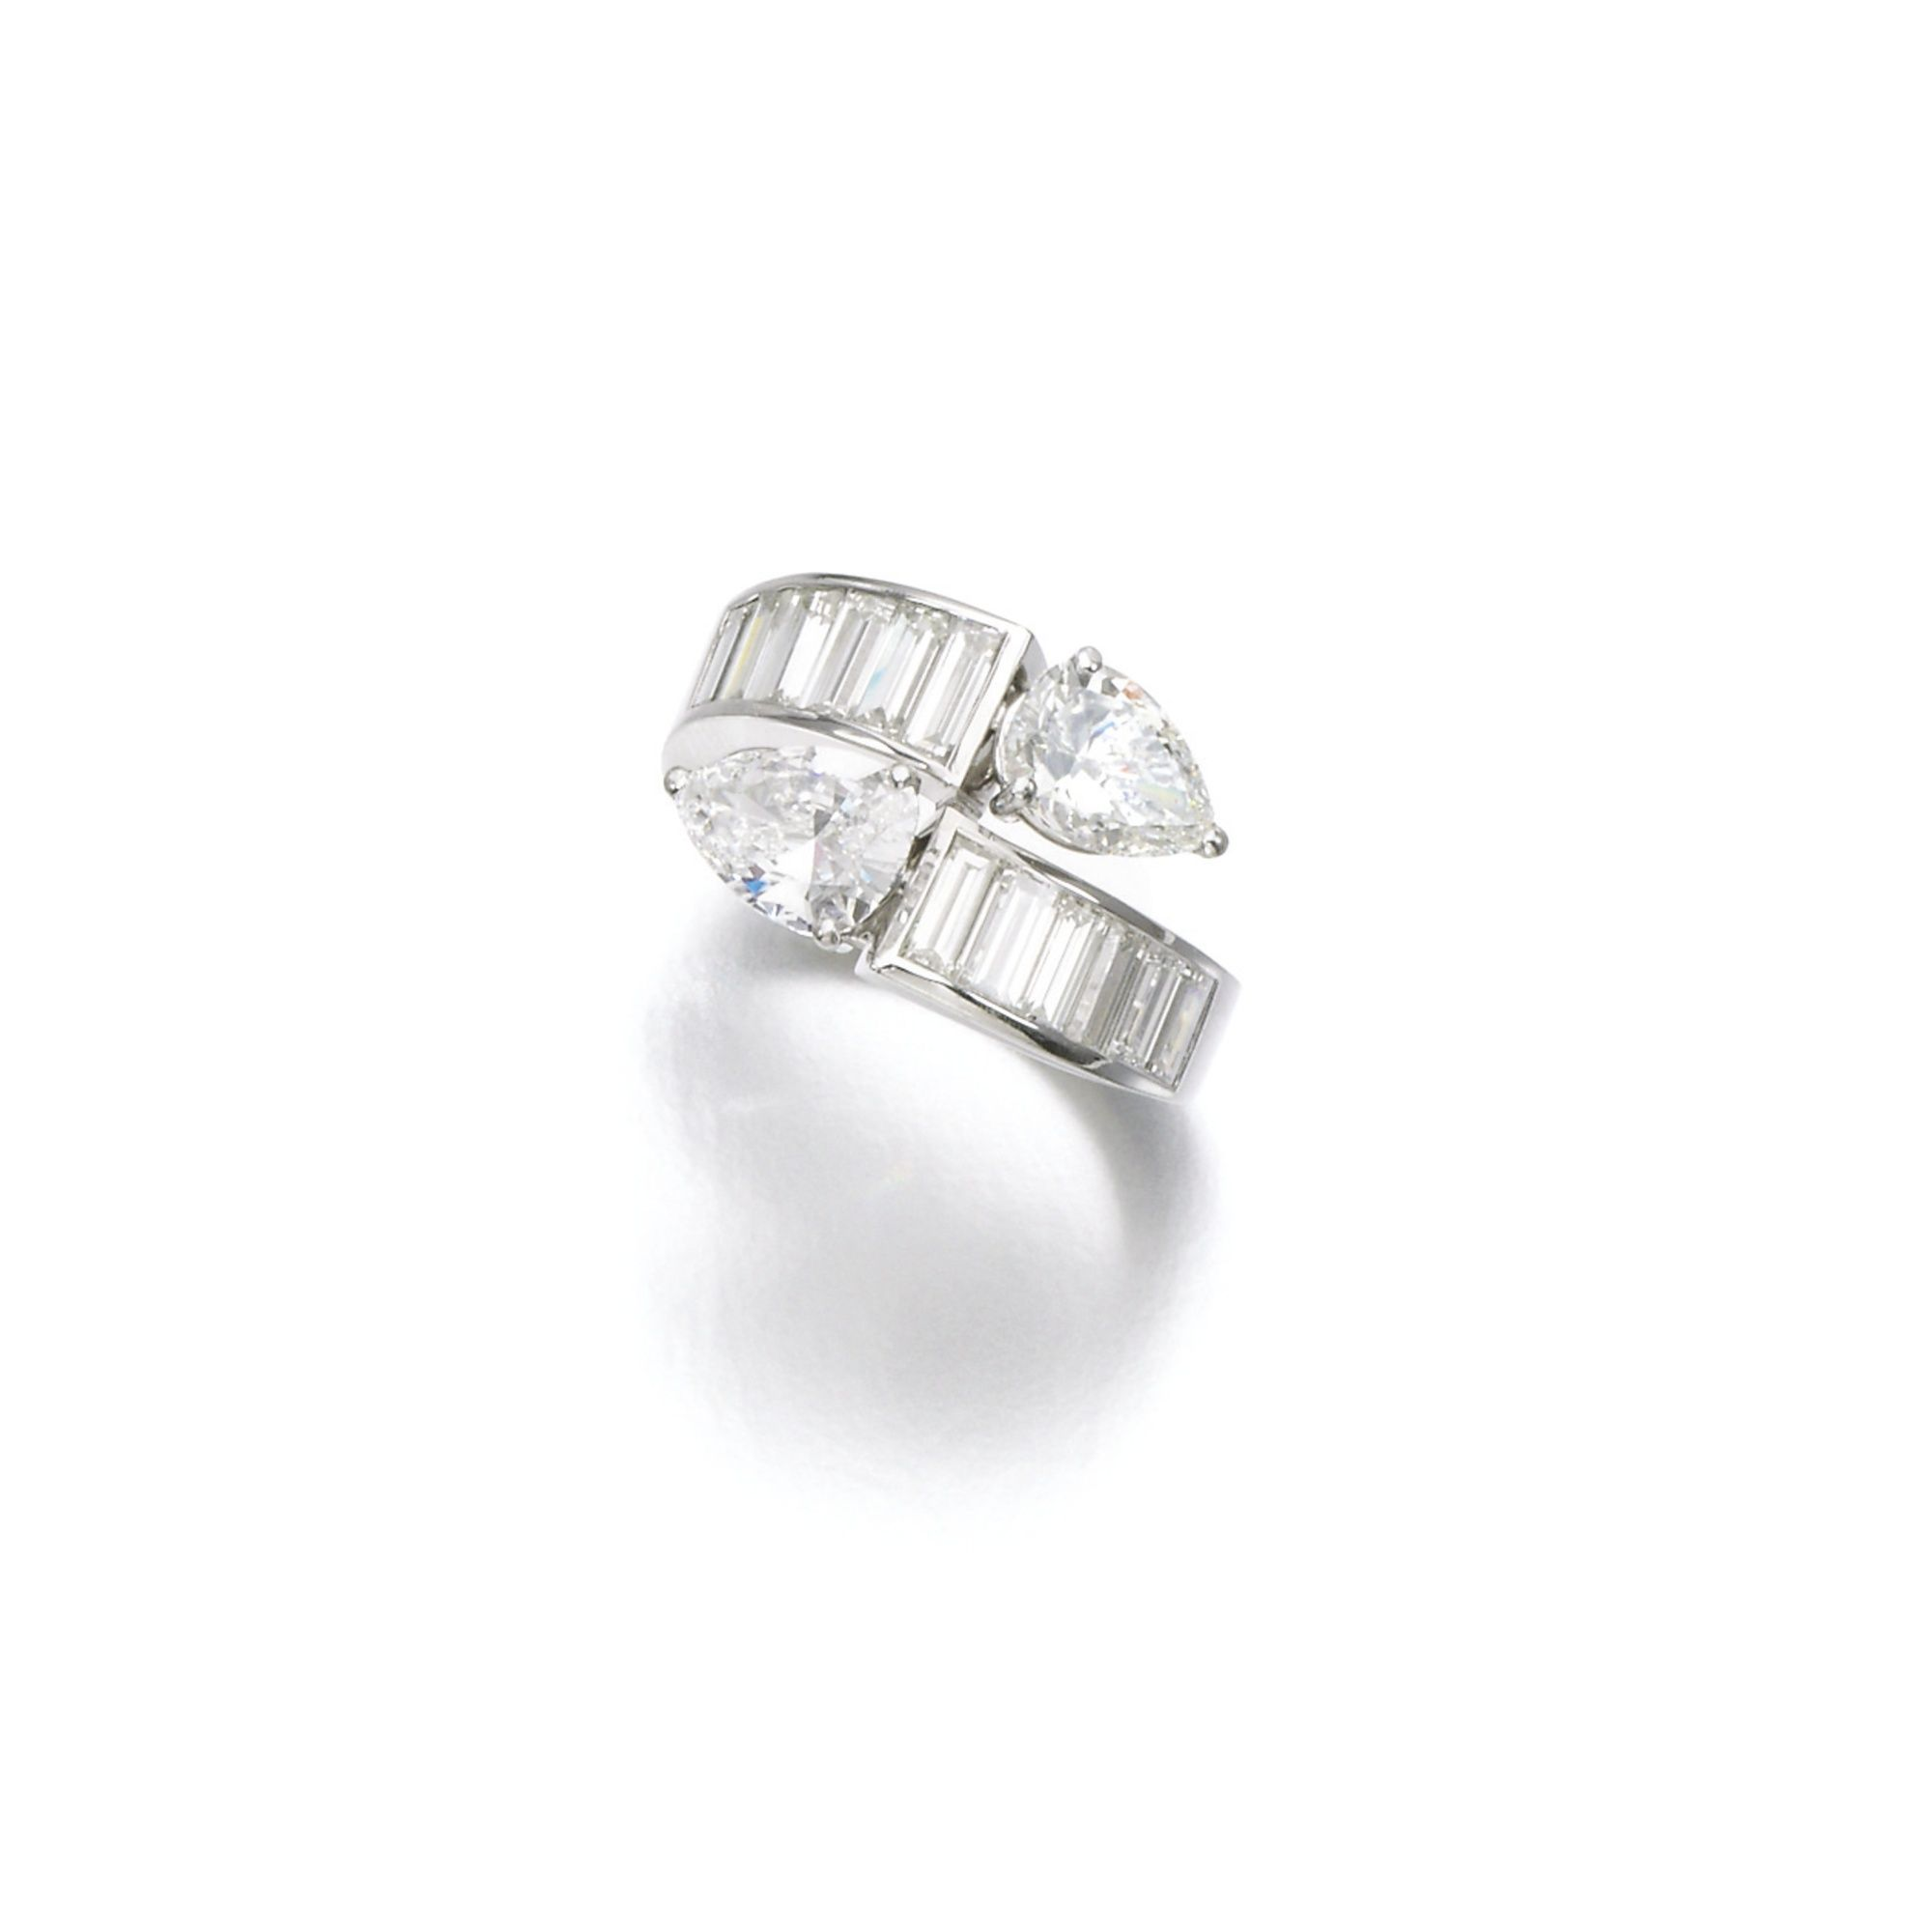 diamond ring gbelin of toi et moi design set with two pearshaped